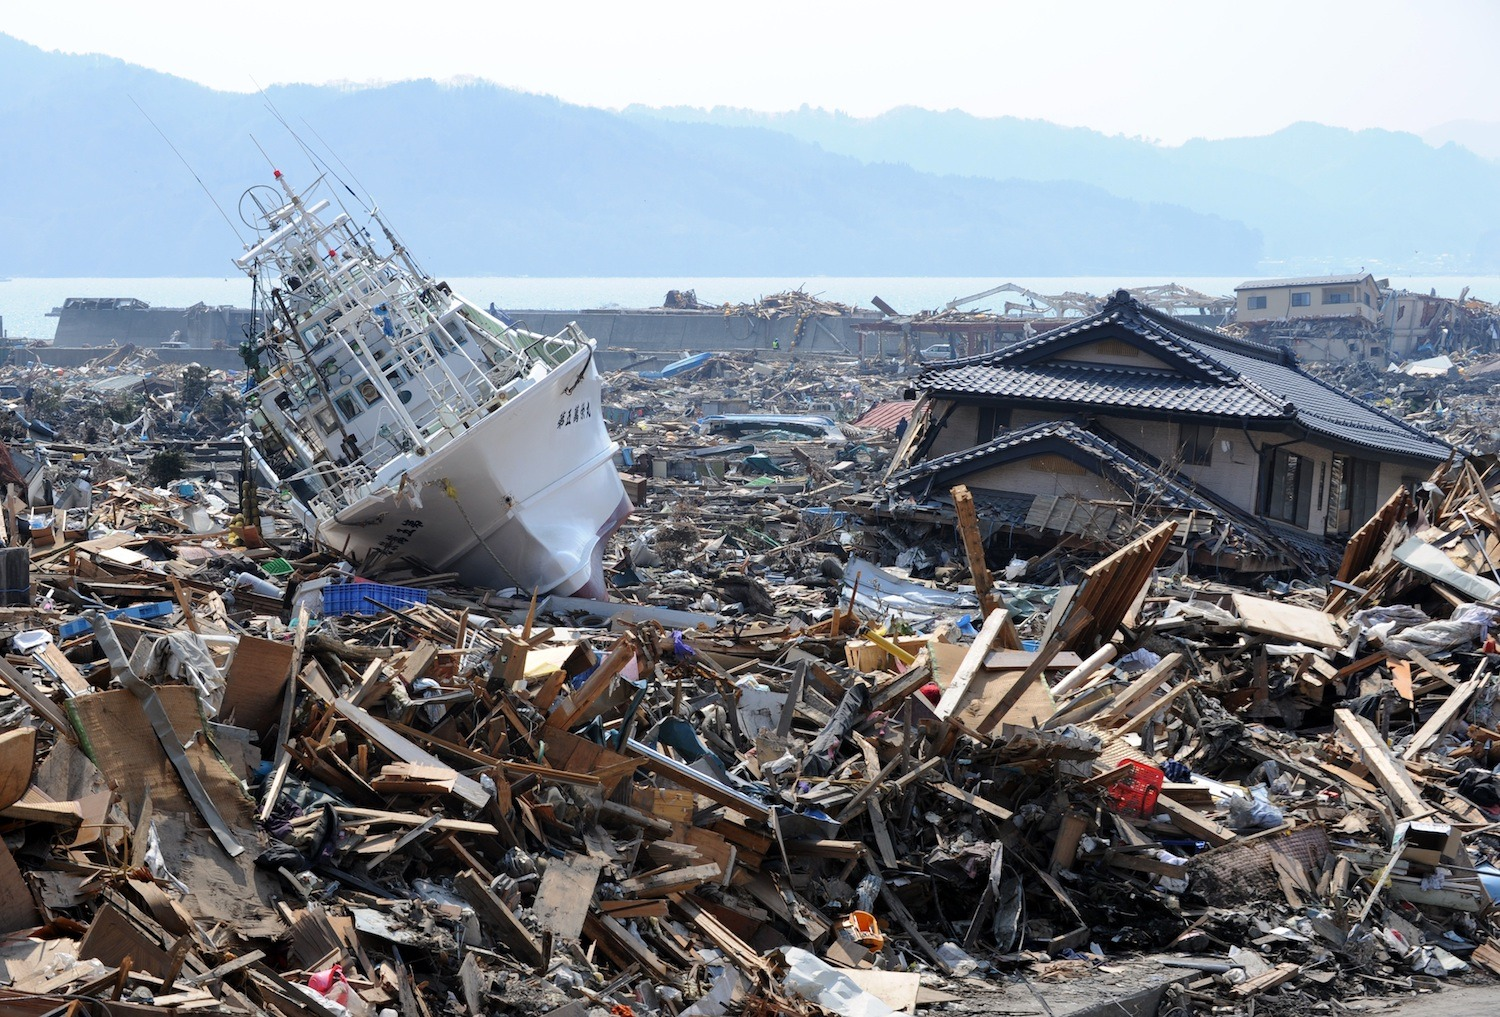 Japan Home To The Most Expensive Natural Disasters In